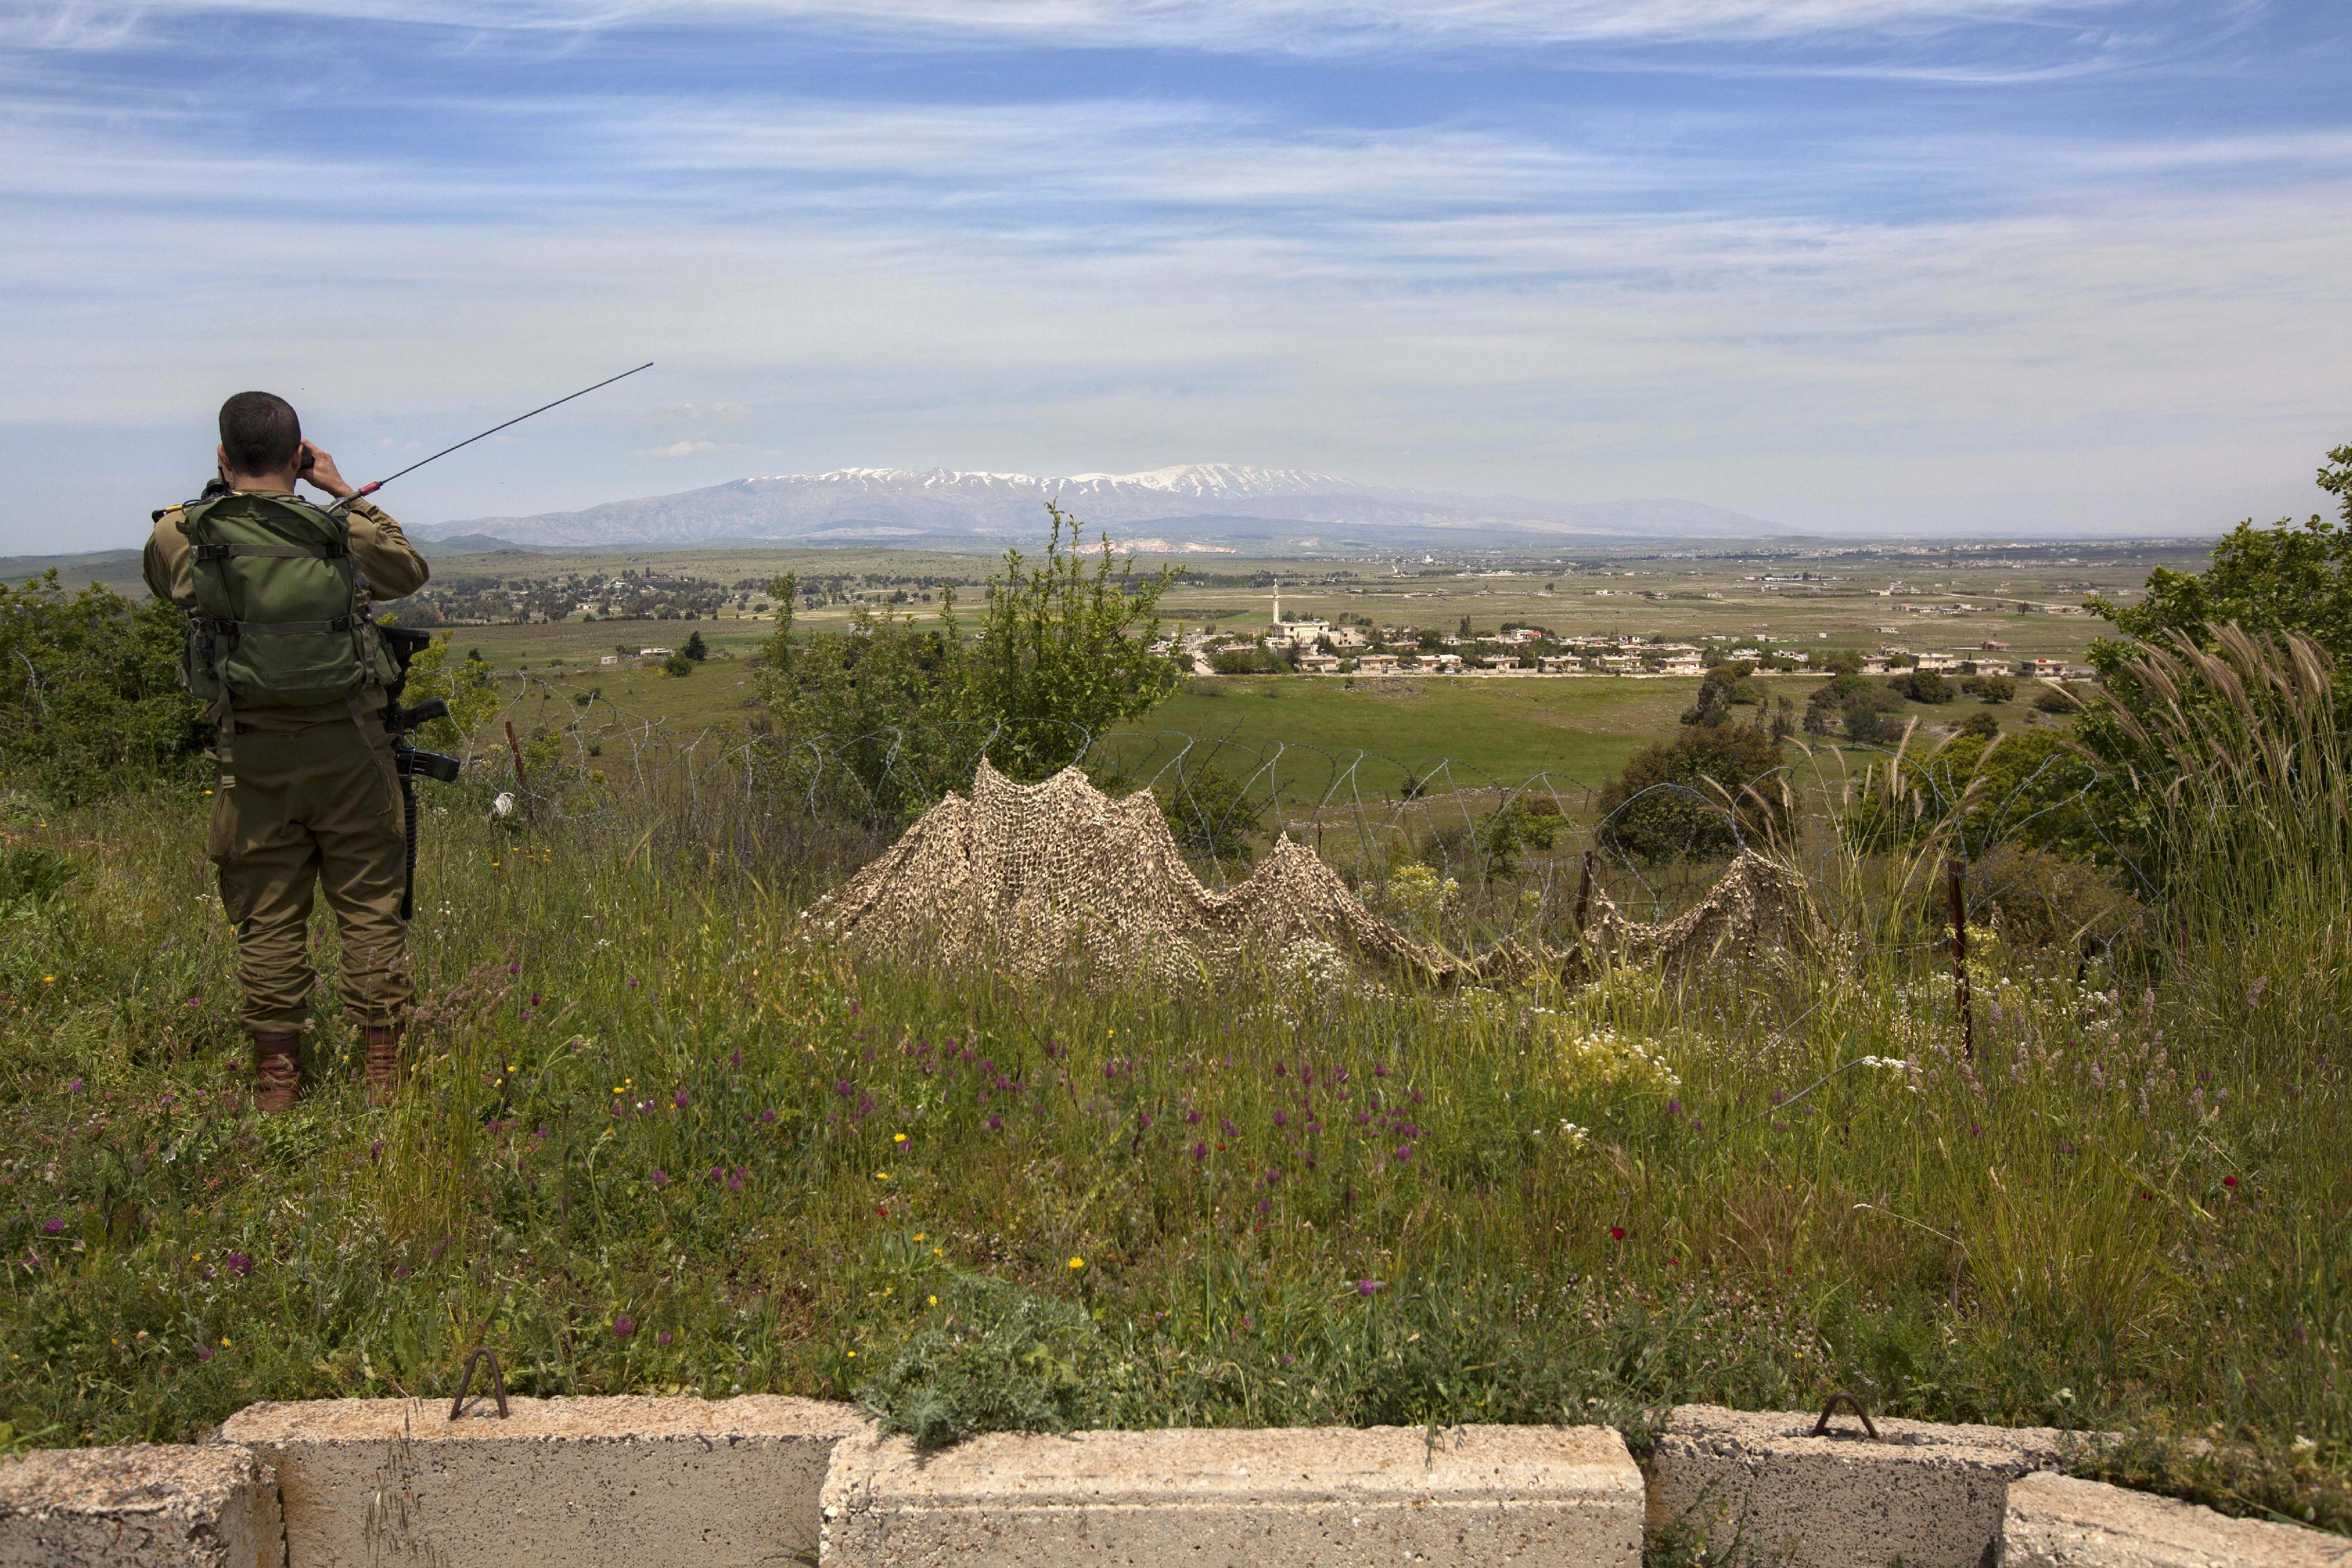 In this photo taken Wednesday, April 24, 2013, an Israeli soldier looks through binoculars at a Syrian village from an army post on the border between Israel and Syrian on the Golan Heights. Against a breathtaking vista of green fields and a snowcapped mountain range, all is silent but for a strong gust of wind whipping across the landscape. The tranquility is suddenly interrupted by a burst of gunfire from beyond a newly built fortified fence: Jihadi rebels are battling with Bashar Assad's battered troops in a nearby Syrian village. Watching it all unfold are Israeli soldiers atop tanks - a sight unseen here in a generation - and the sounds of explosions from a large-scale Israeli drill are distinctly heard in the background. (AP Photo/Sebastian Scheiner)